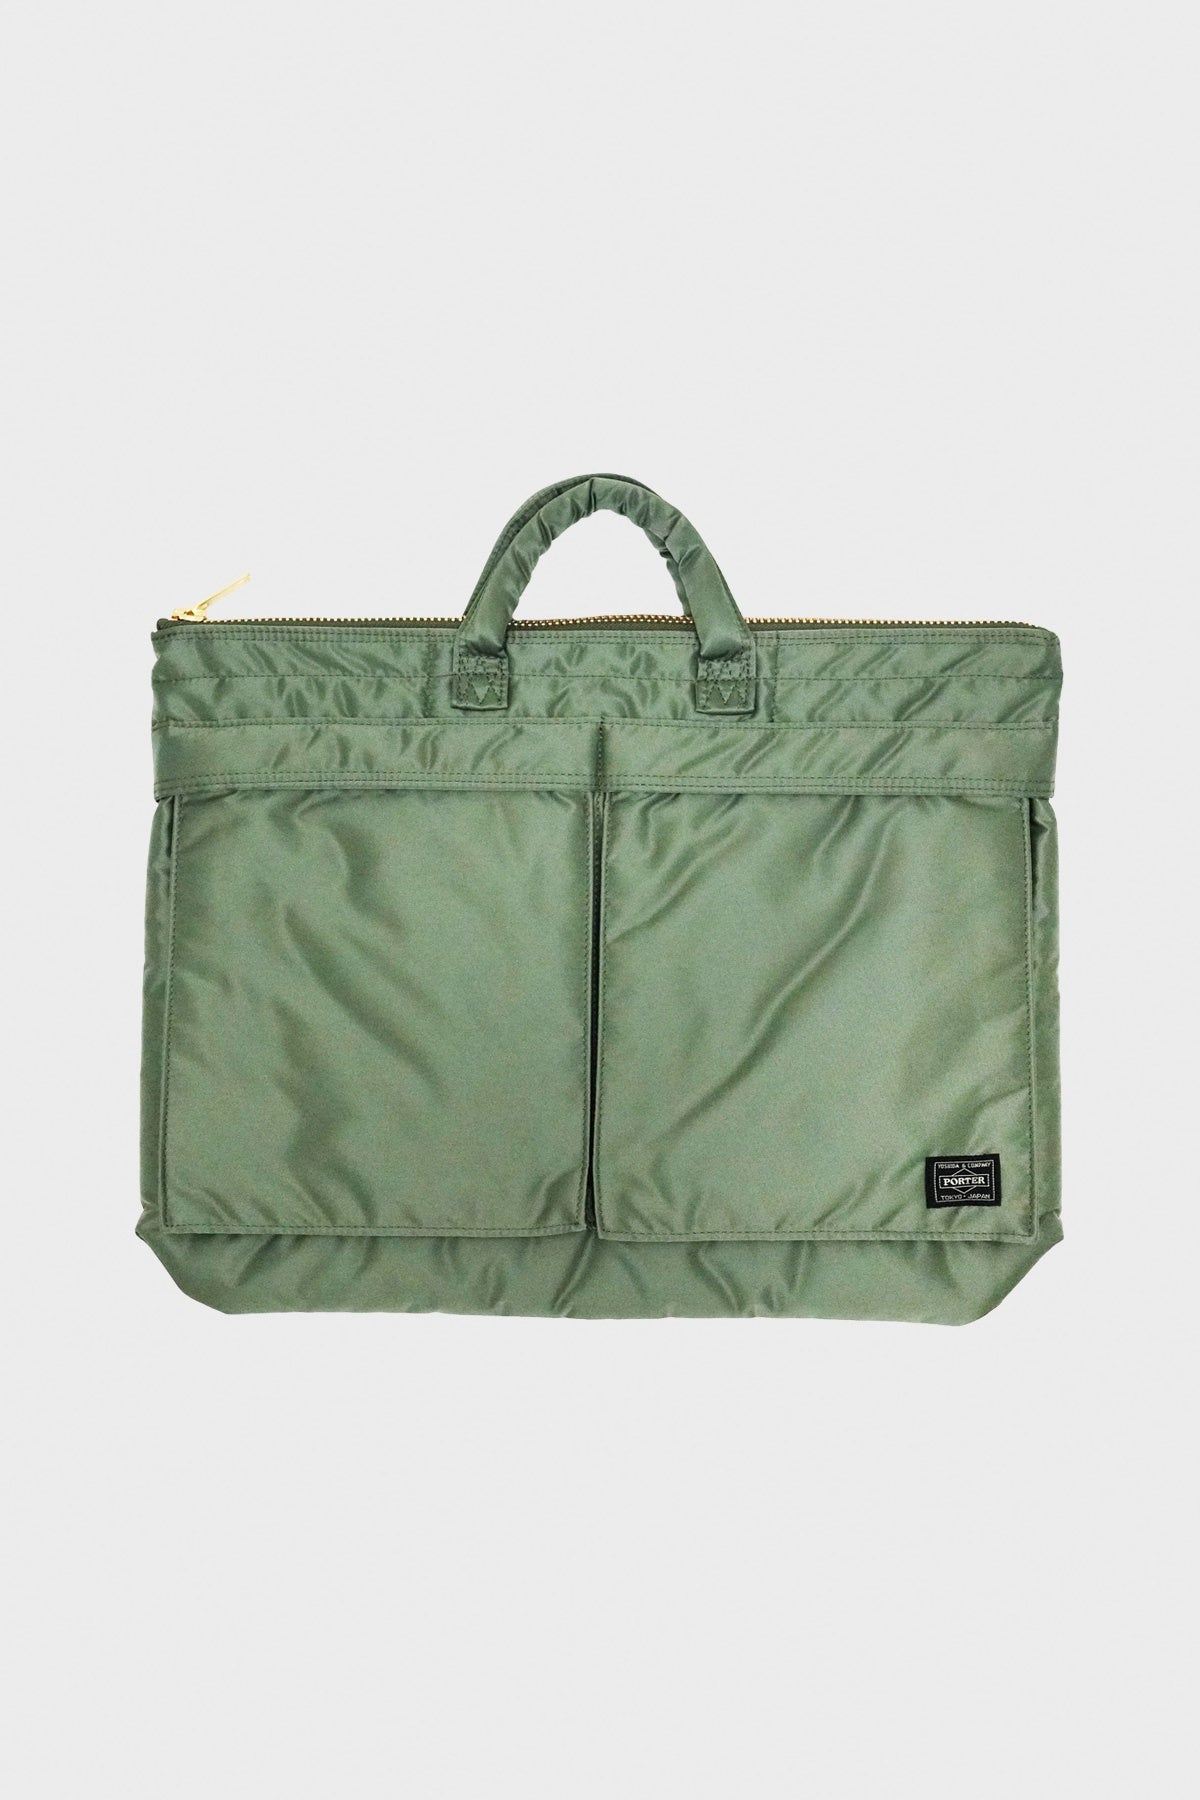 Porter Yoshida and Co - Brief Case - Sage Green - Canoe Club